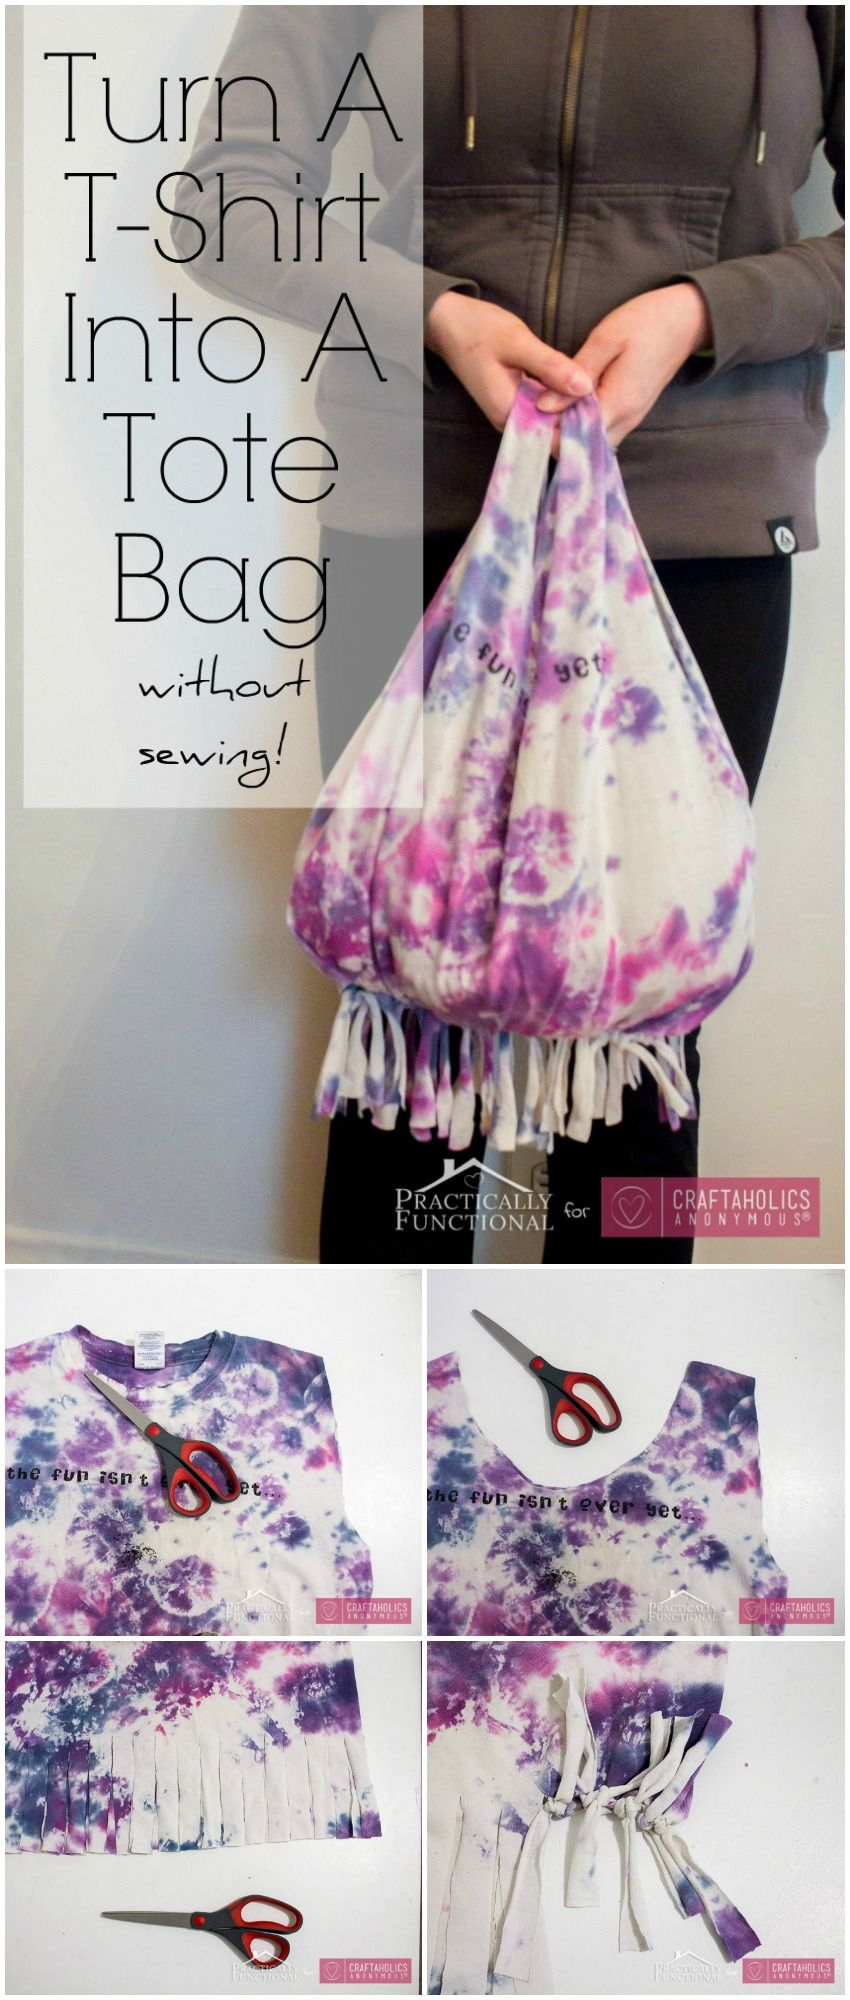 How To Turn A Tee Into Bag Without Sewing